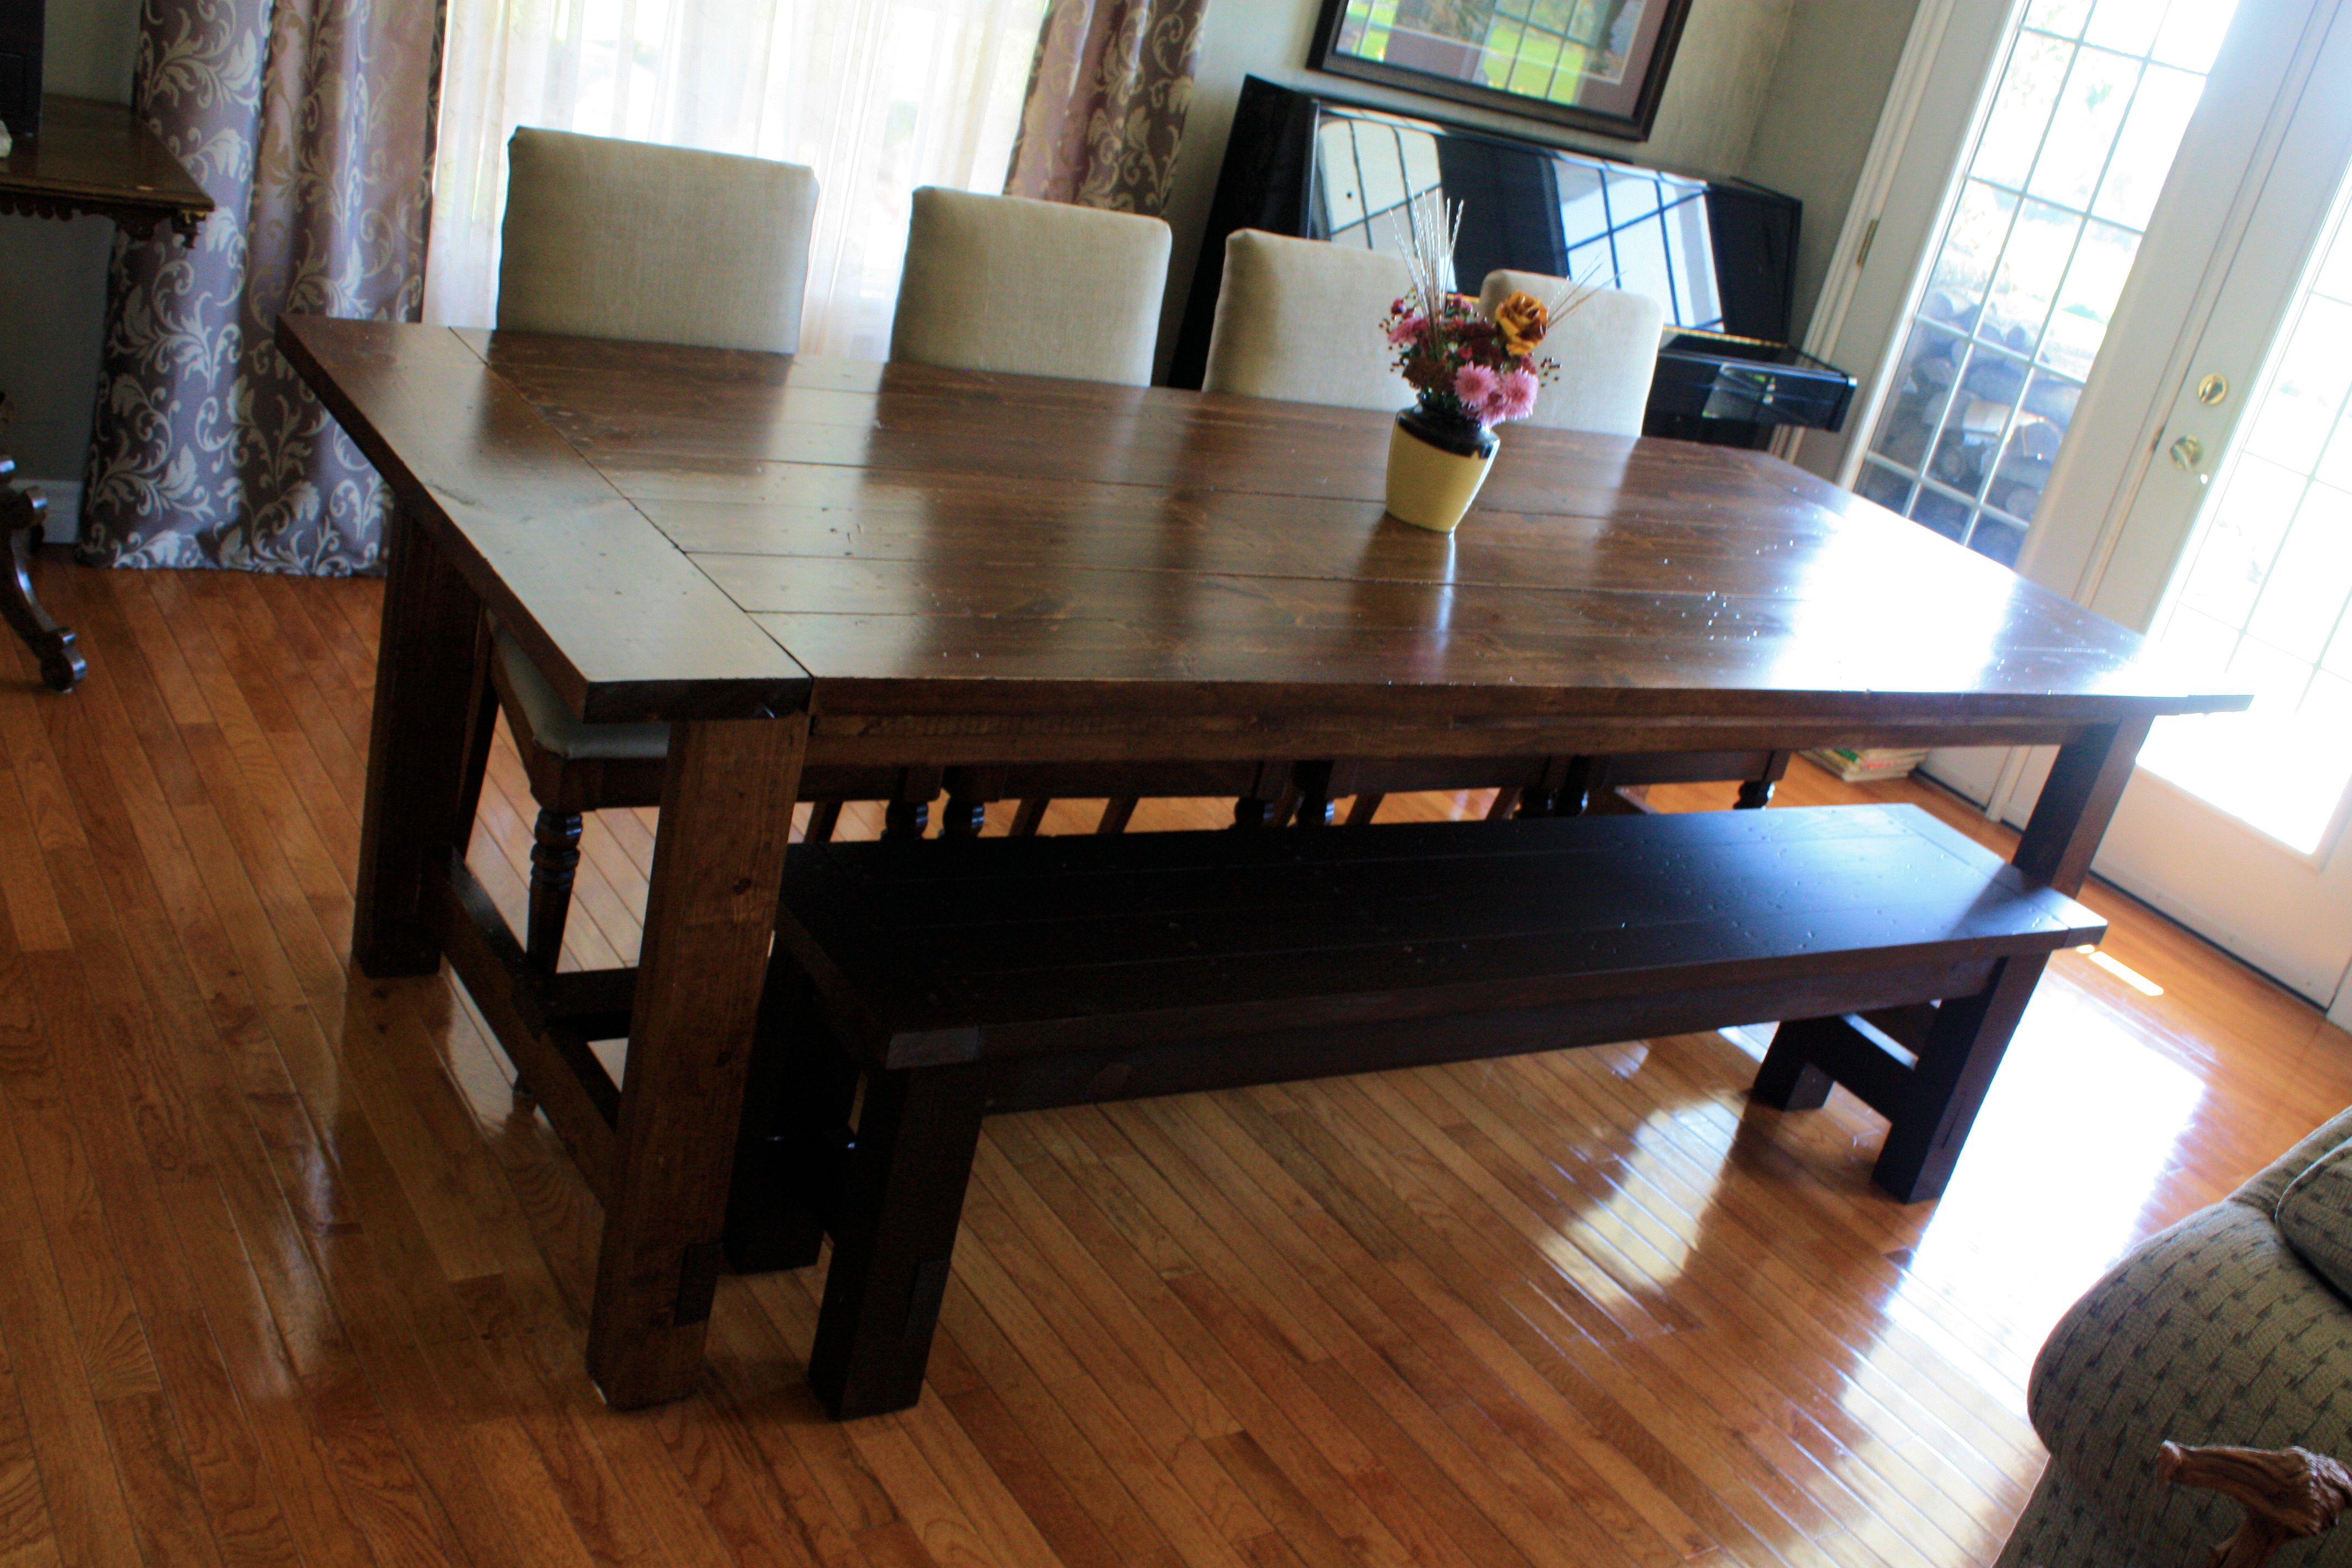 Super Big Farmhouse Dining Table And Bench Do It Yourself Home Projects From Ana White Farmhouse Kitchen Tables Farmhouse Dining Kitchen Table Wood